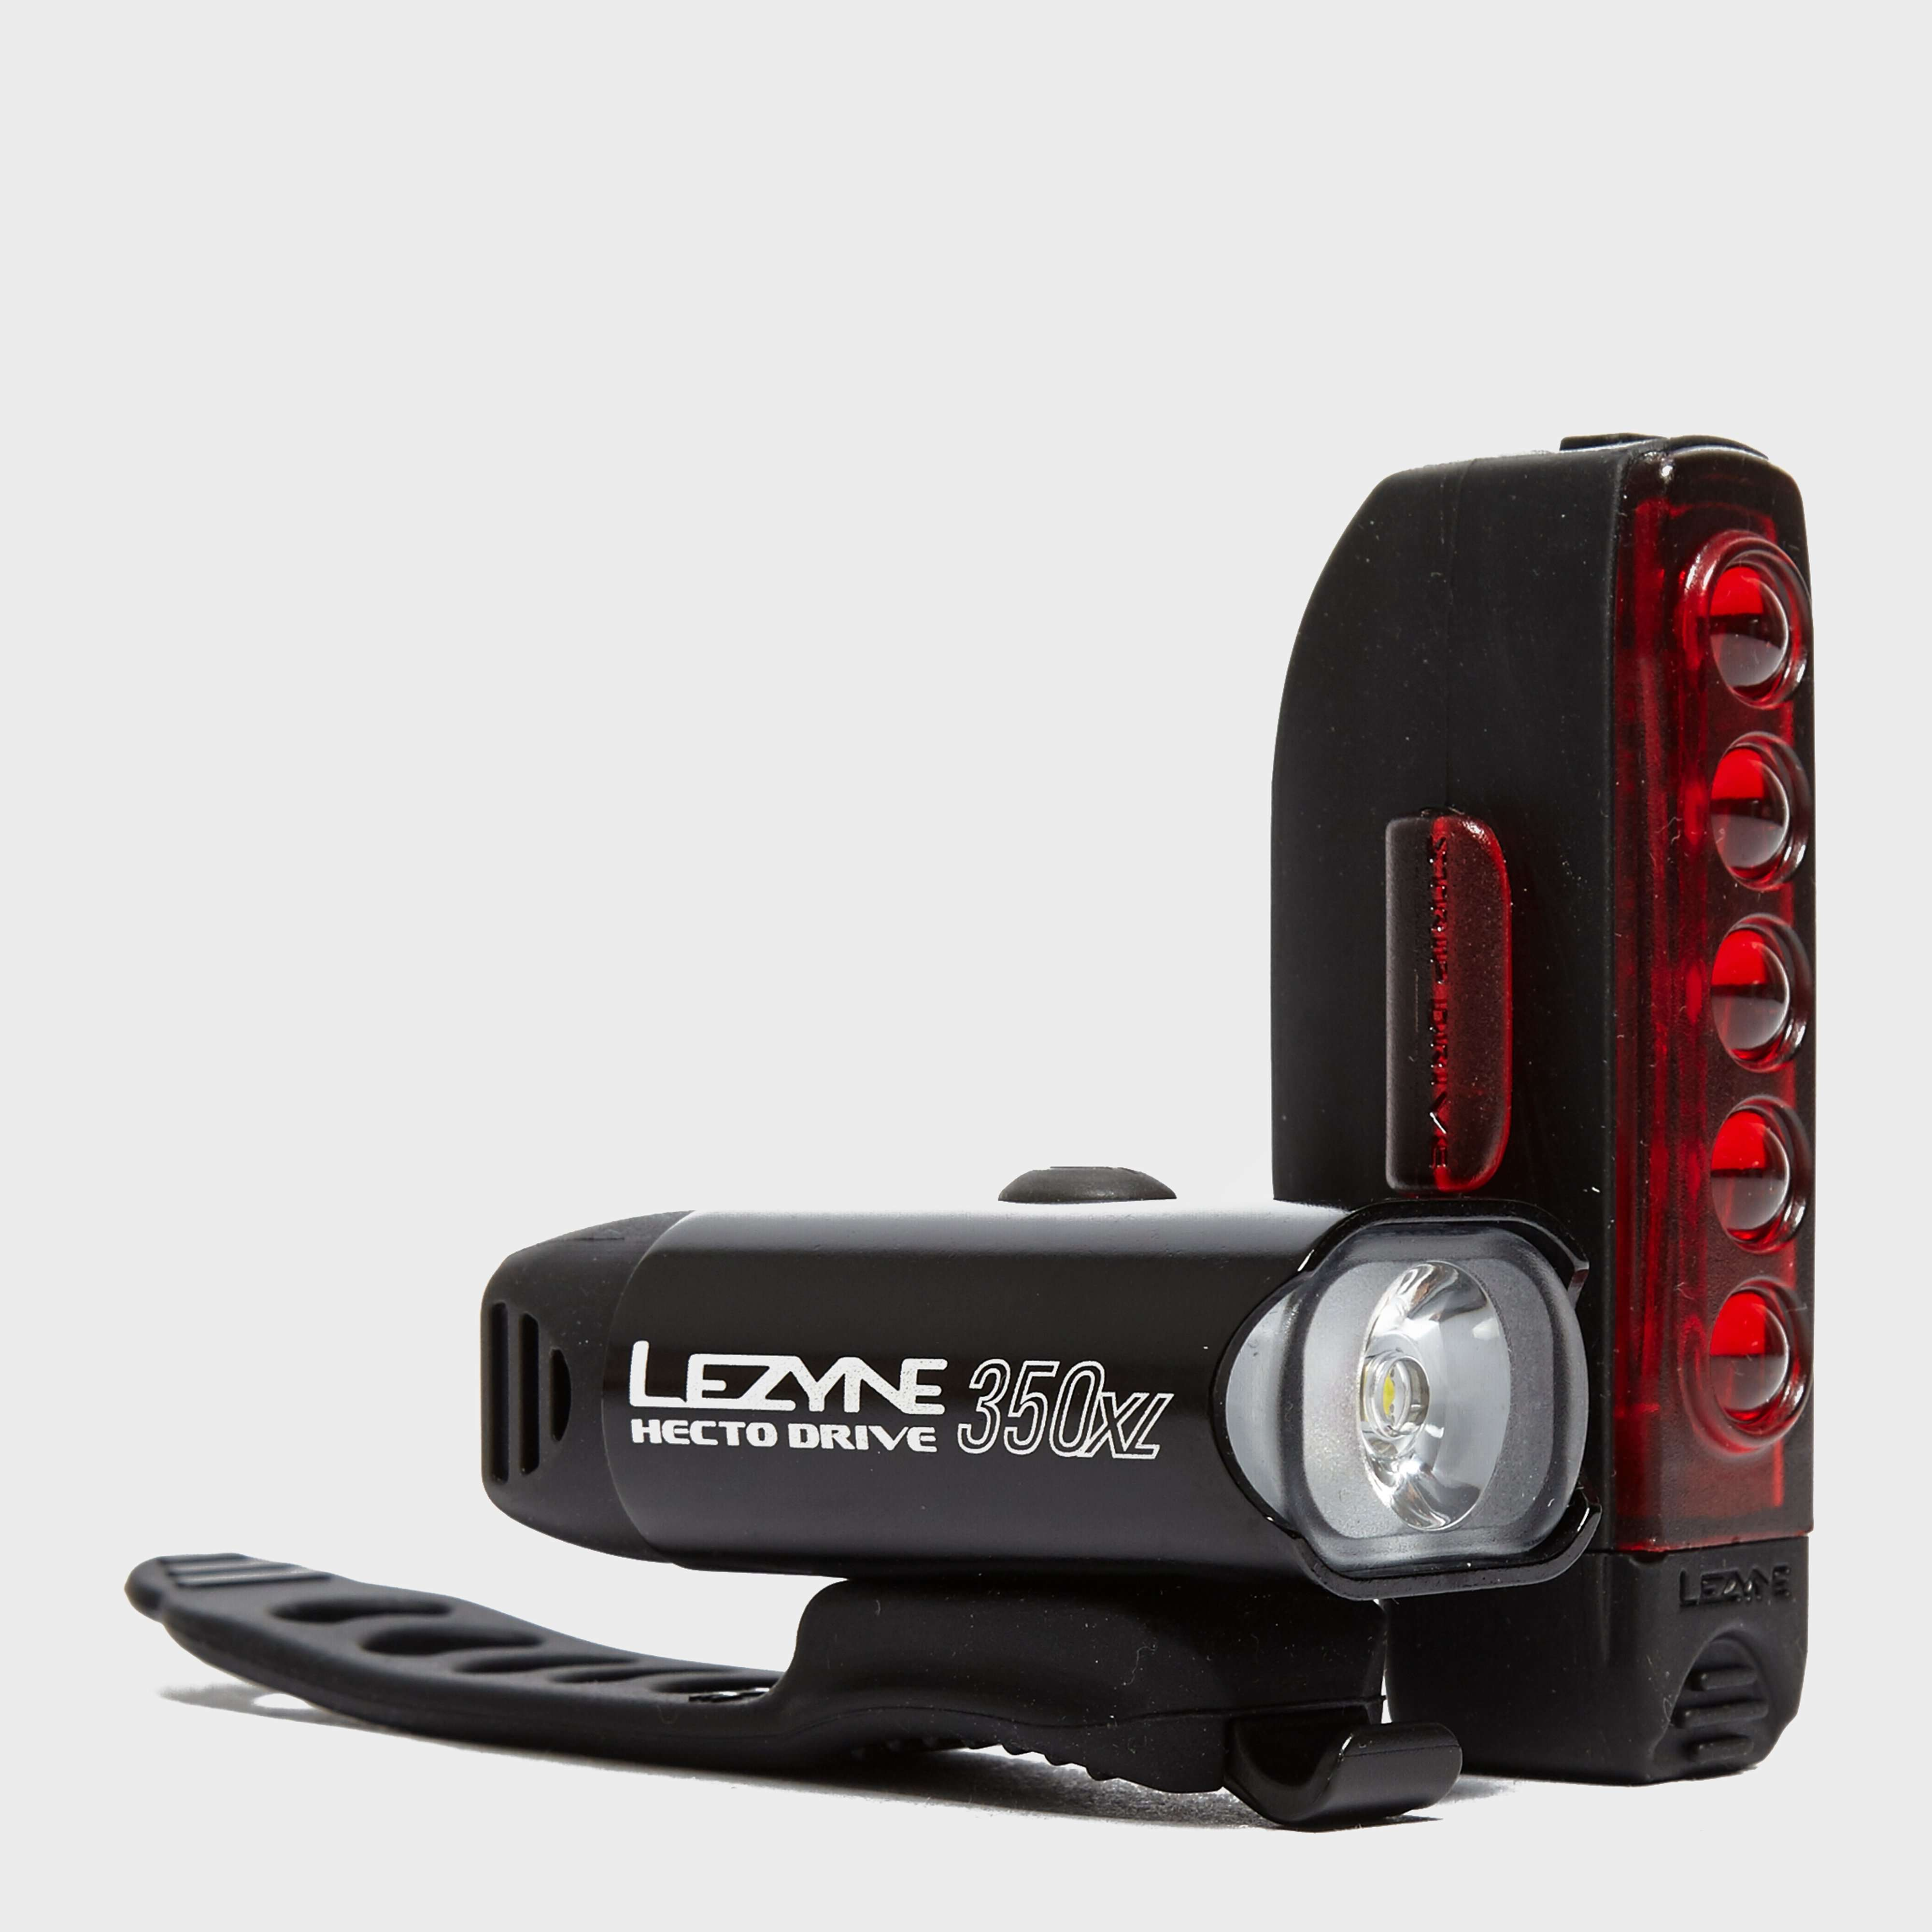 LEZYNE Hecto Drive 350 XL Bike Light with Strip Drive Rear